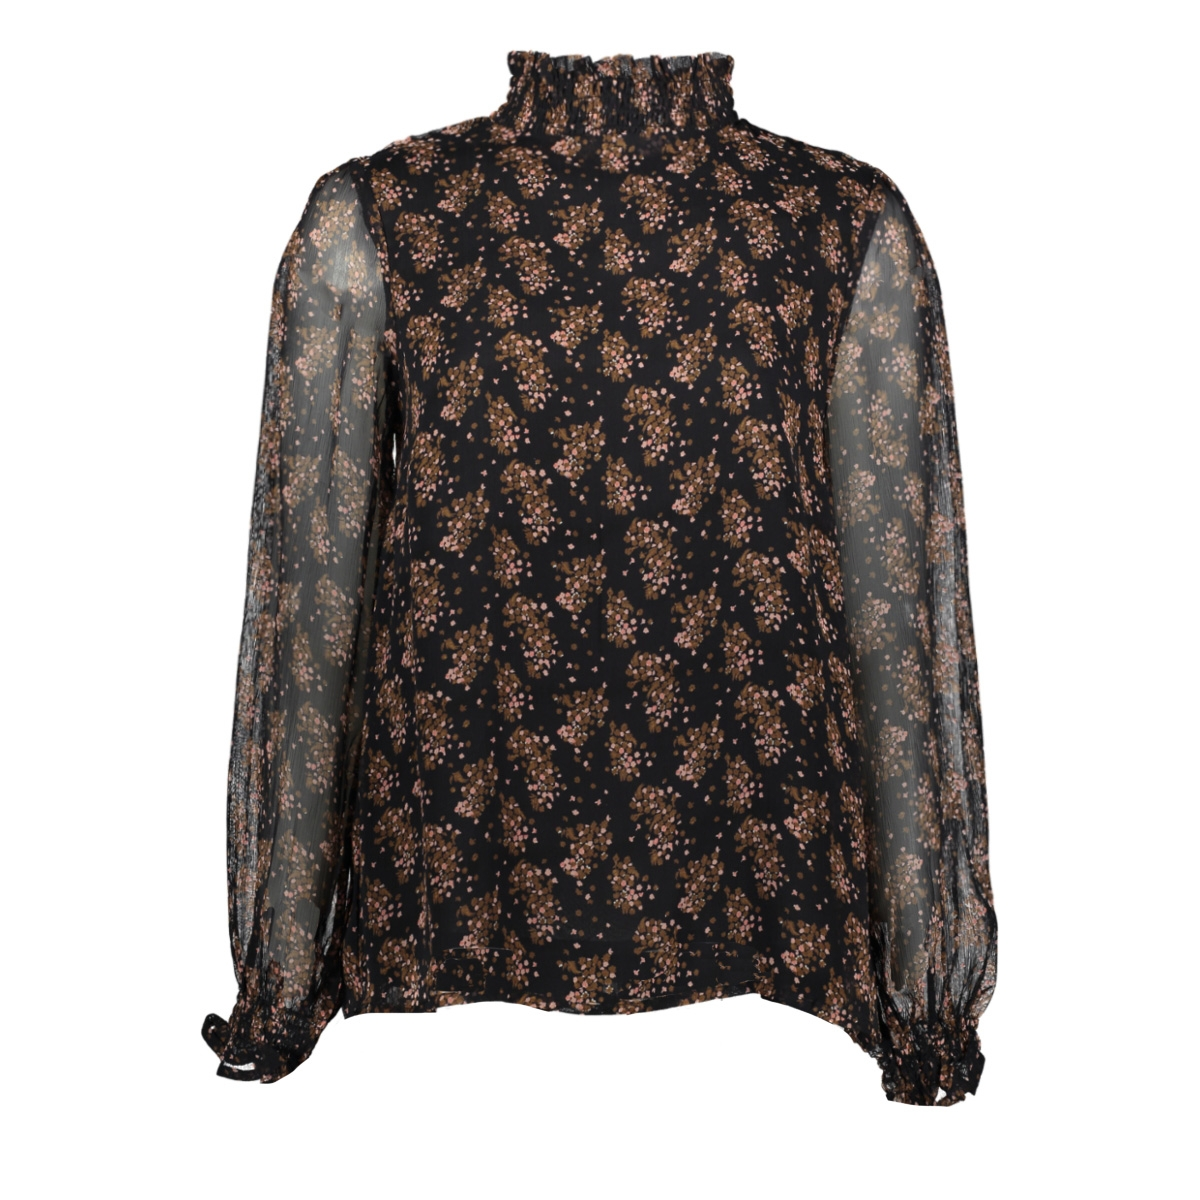 miro blouse s20 68 circle of trust blouse 2061 flower wall